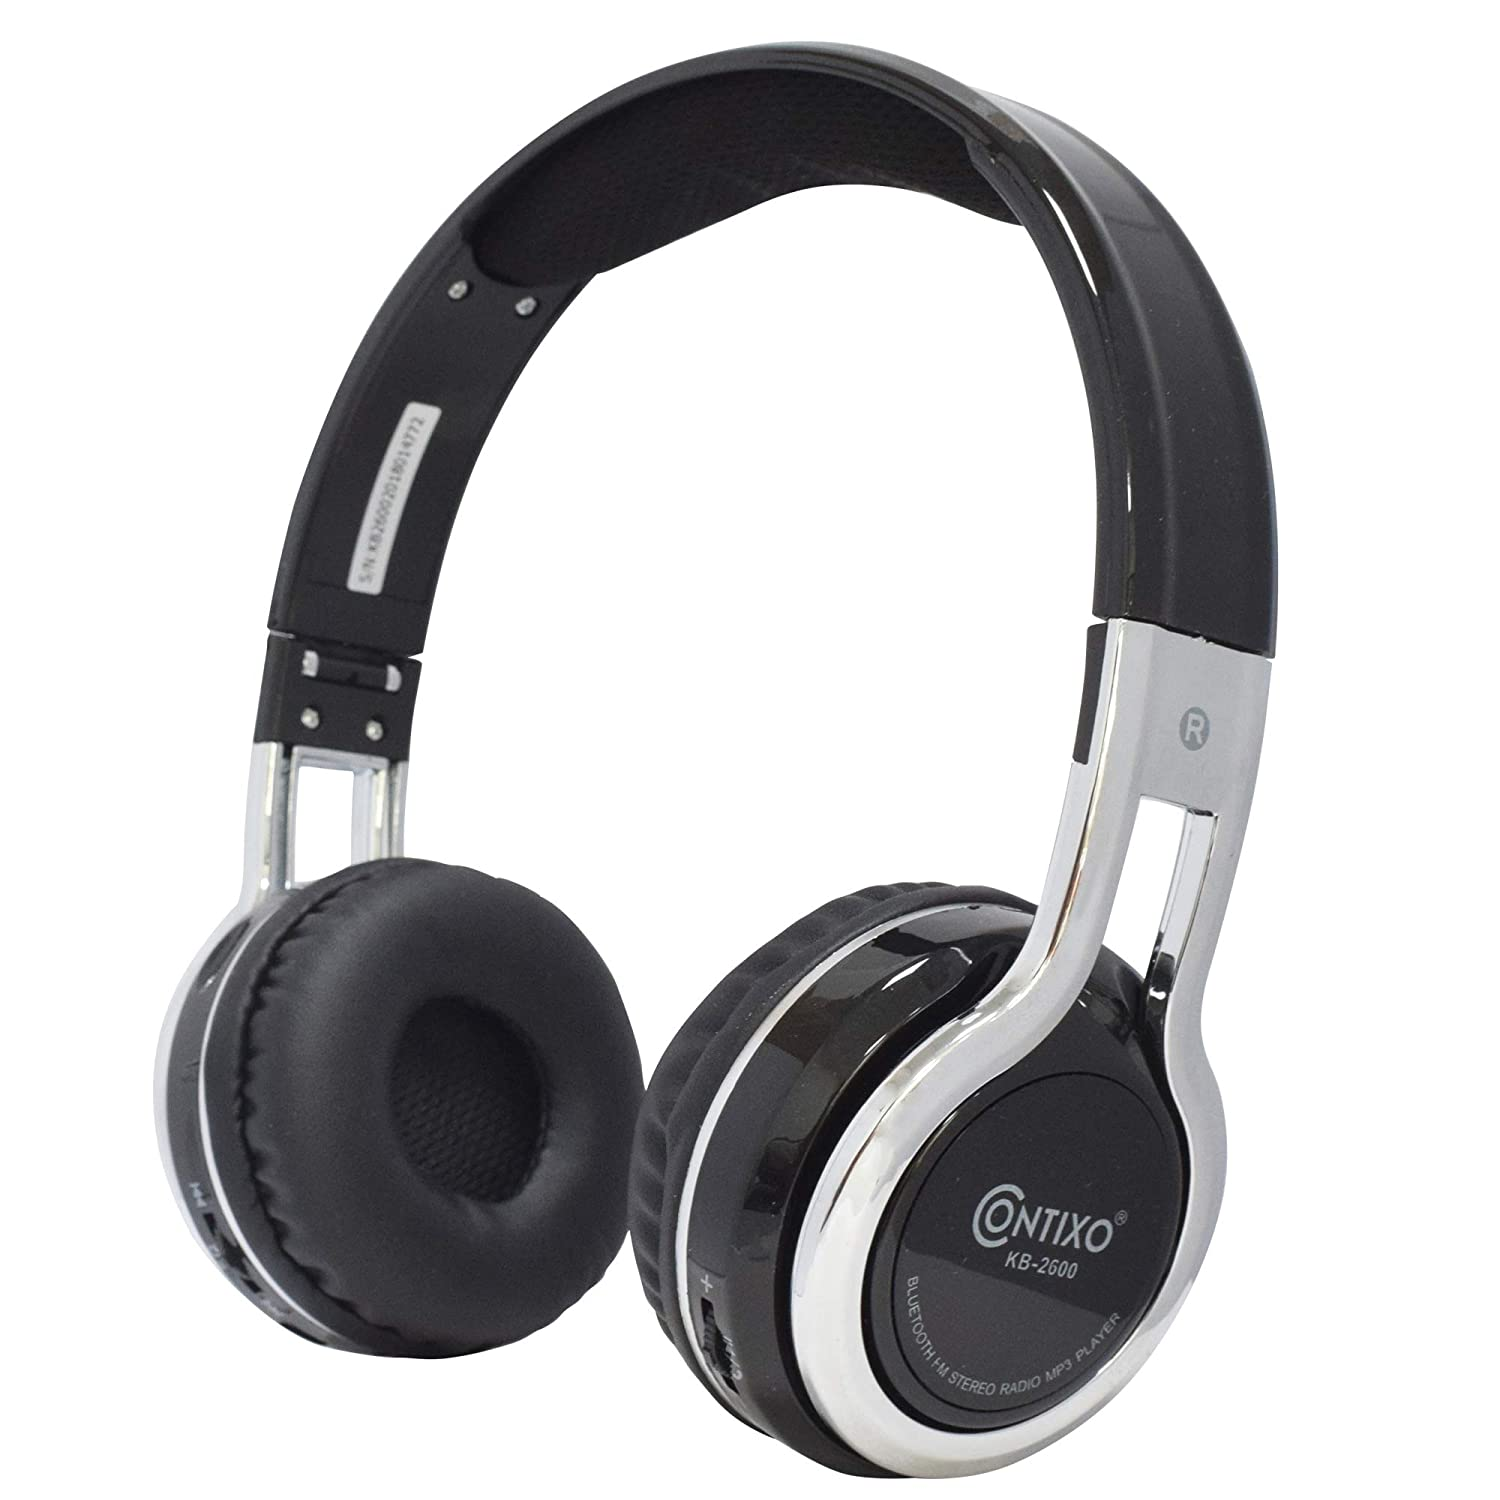 Contixo KB2600 Kids Over The Ear Foldable Bluetooth Headphones Kids Safe 85dB with Volume Limiter, Built-in Microphone, Micro SD Card Slot, FM Stereo Radio, Phone Controls(Black)